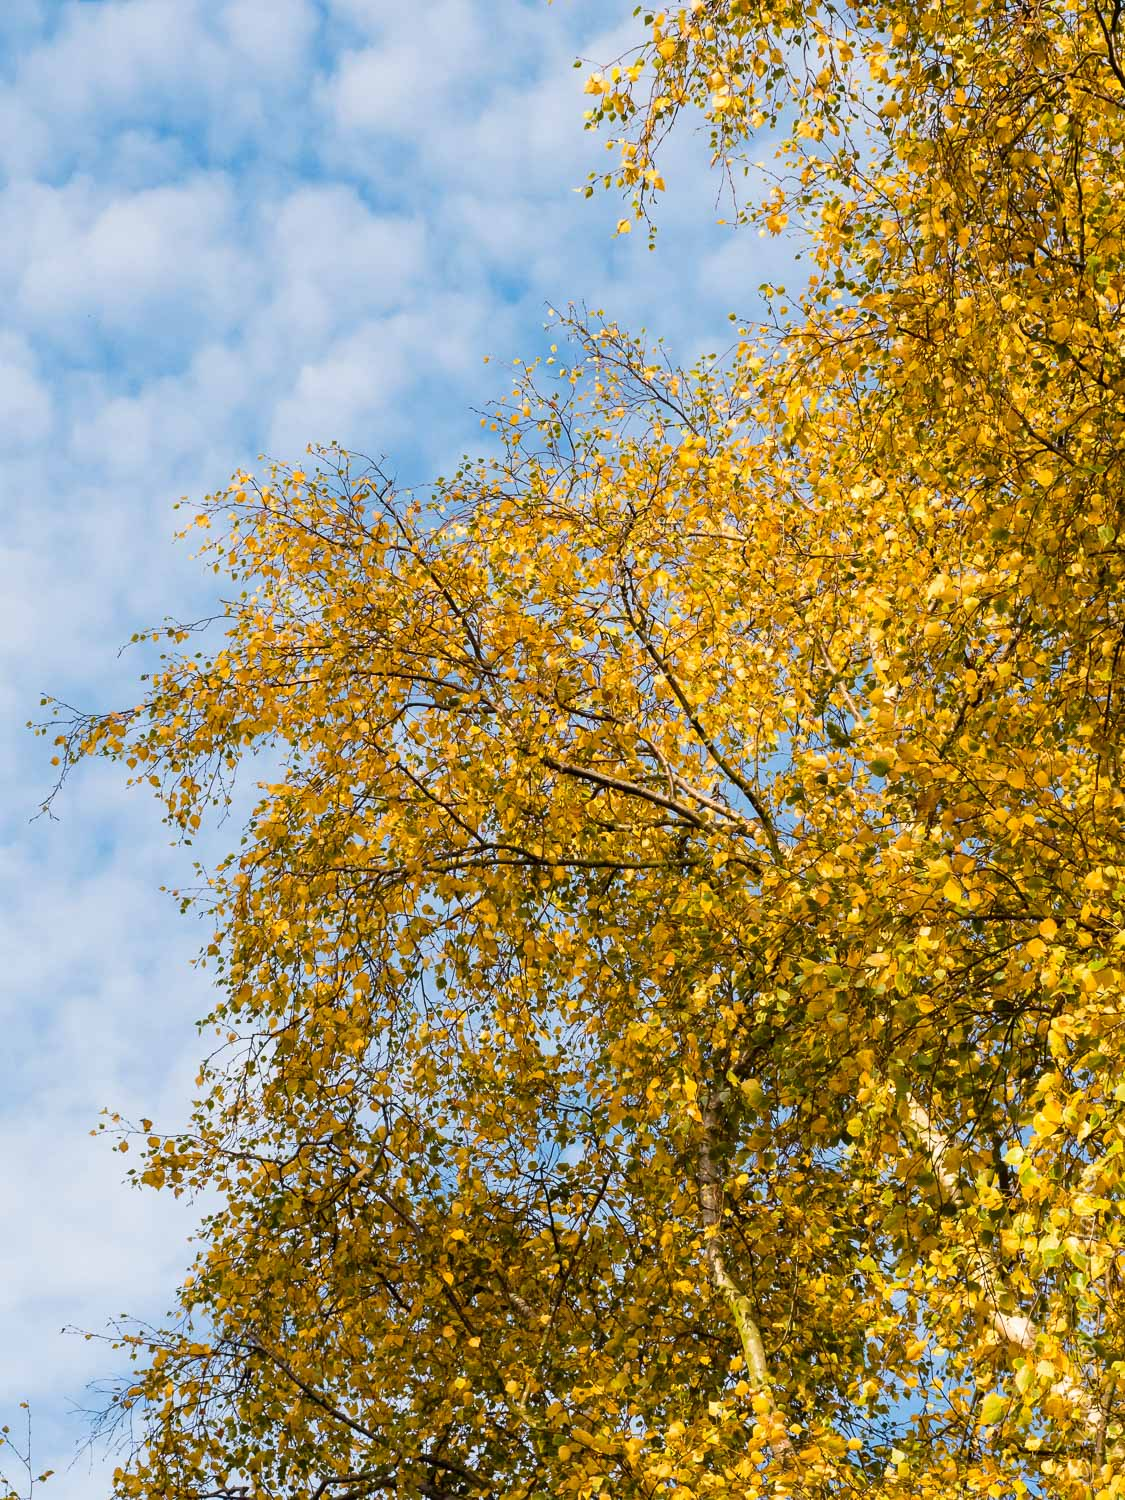 A birch tree dressed in full golden regalia